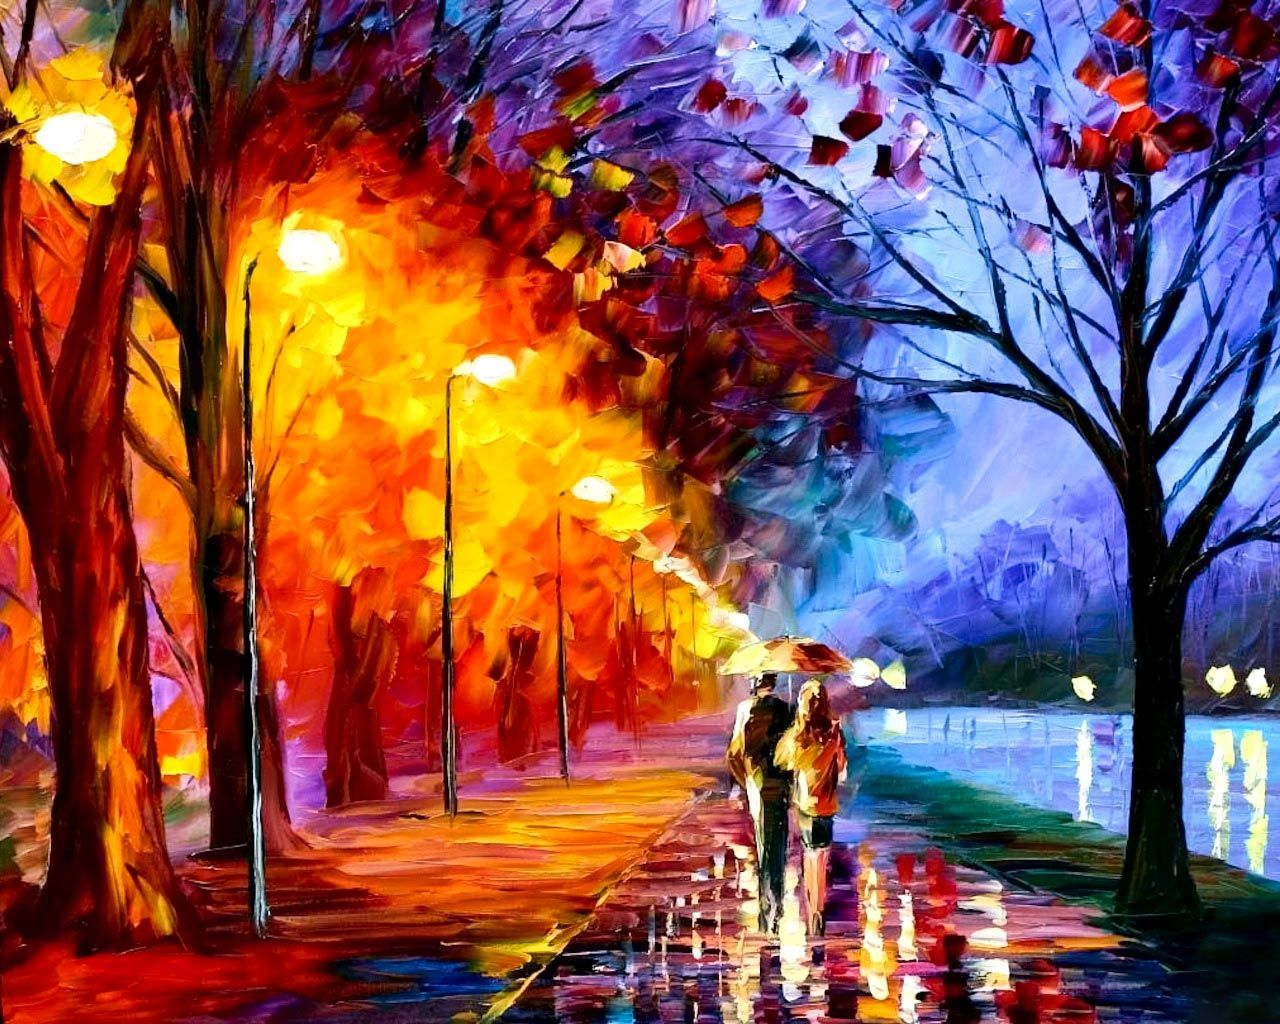 Autumn Oil Painting High Quality Art Wallpapers Hd Desktop Pc High Quality Lukisan Kanvas Seni Melukis Seni Kanvas